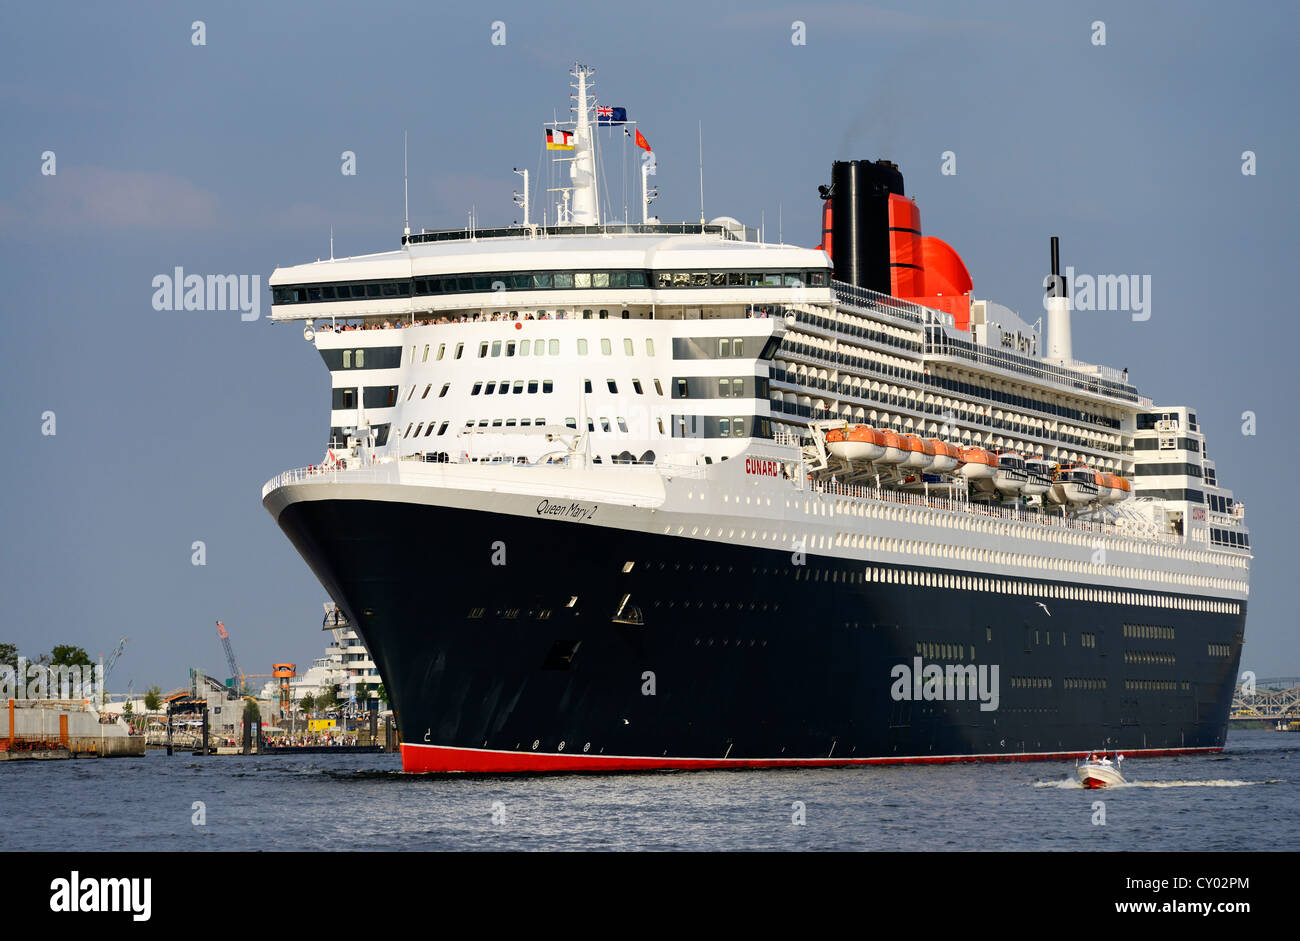 Cruise Ship Queen Mary 2 Size Comparison With A Sports Boat In The Stock Pho